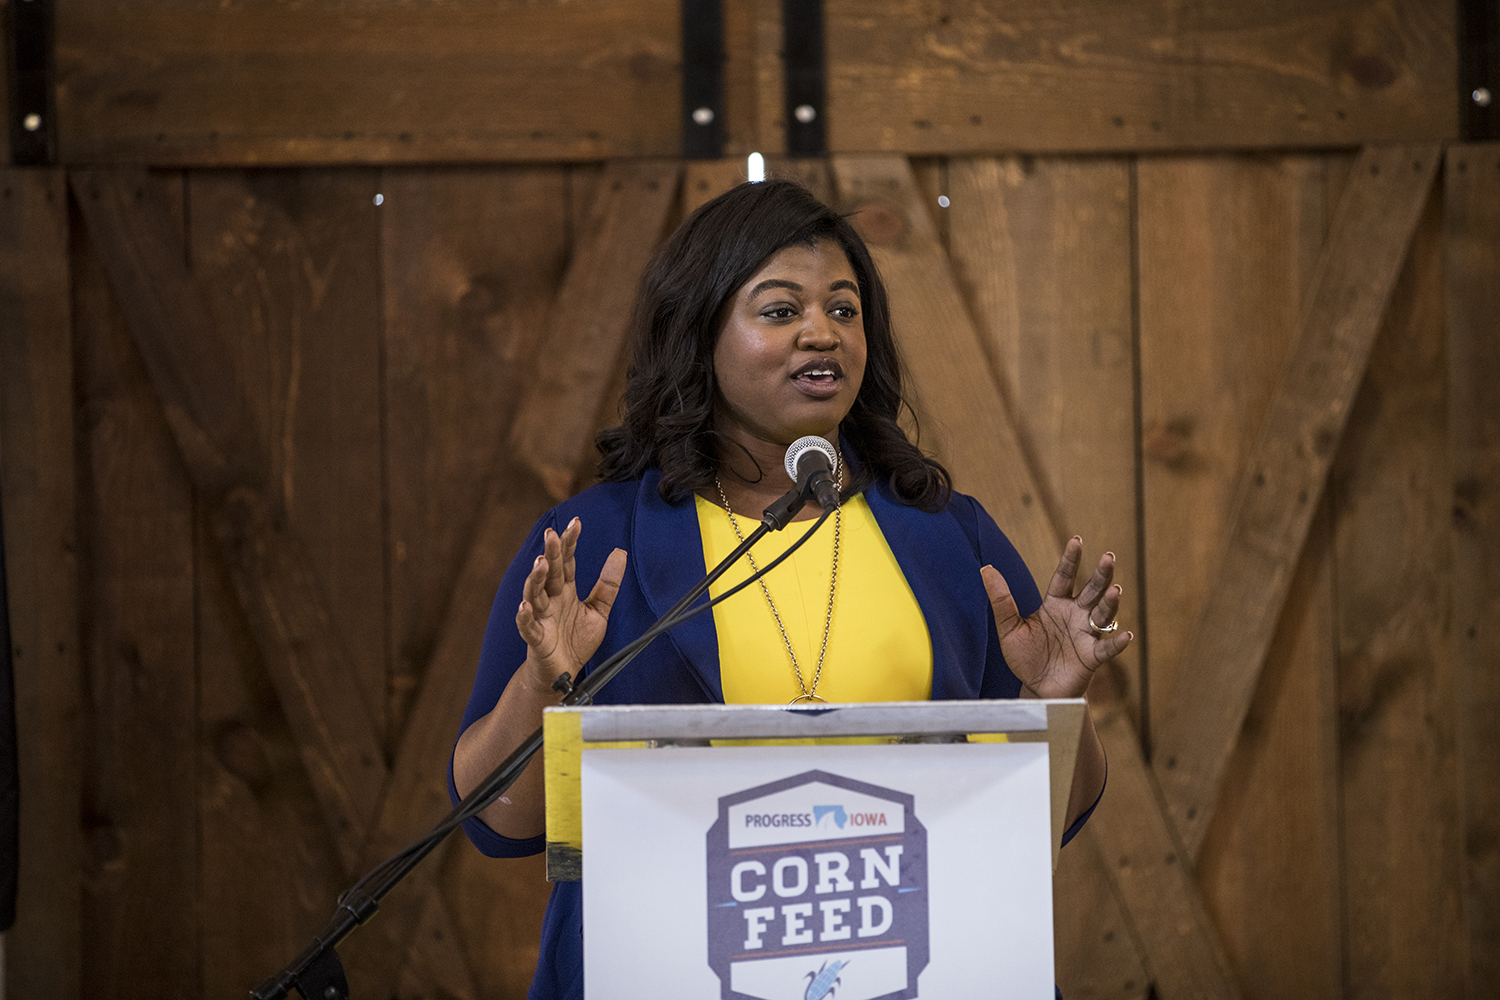 Democratic candidate for Secretary of State Deidre DeJear speaks during the Progress Iowa Corn Feed in Bondurant Iowa on Sunday, September 16, 2018.  The event featured a variety of local and national democratic politicians who spoke on how Democrats can work together leading up to the midterm elections.